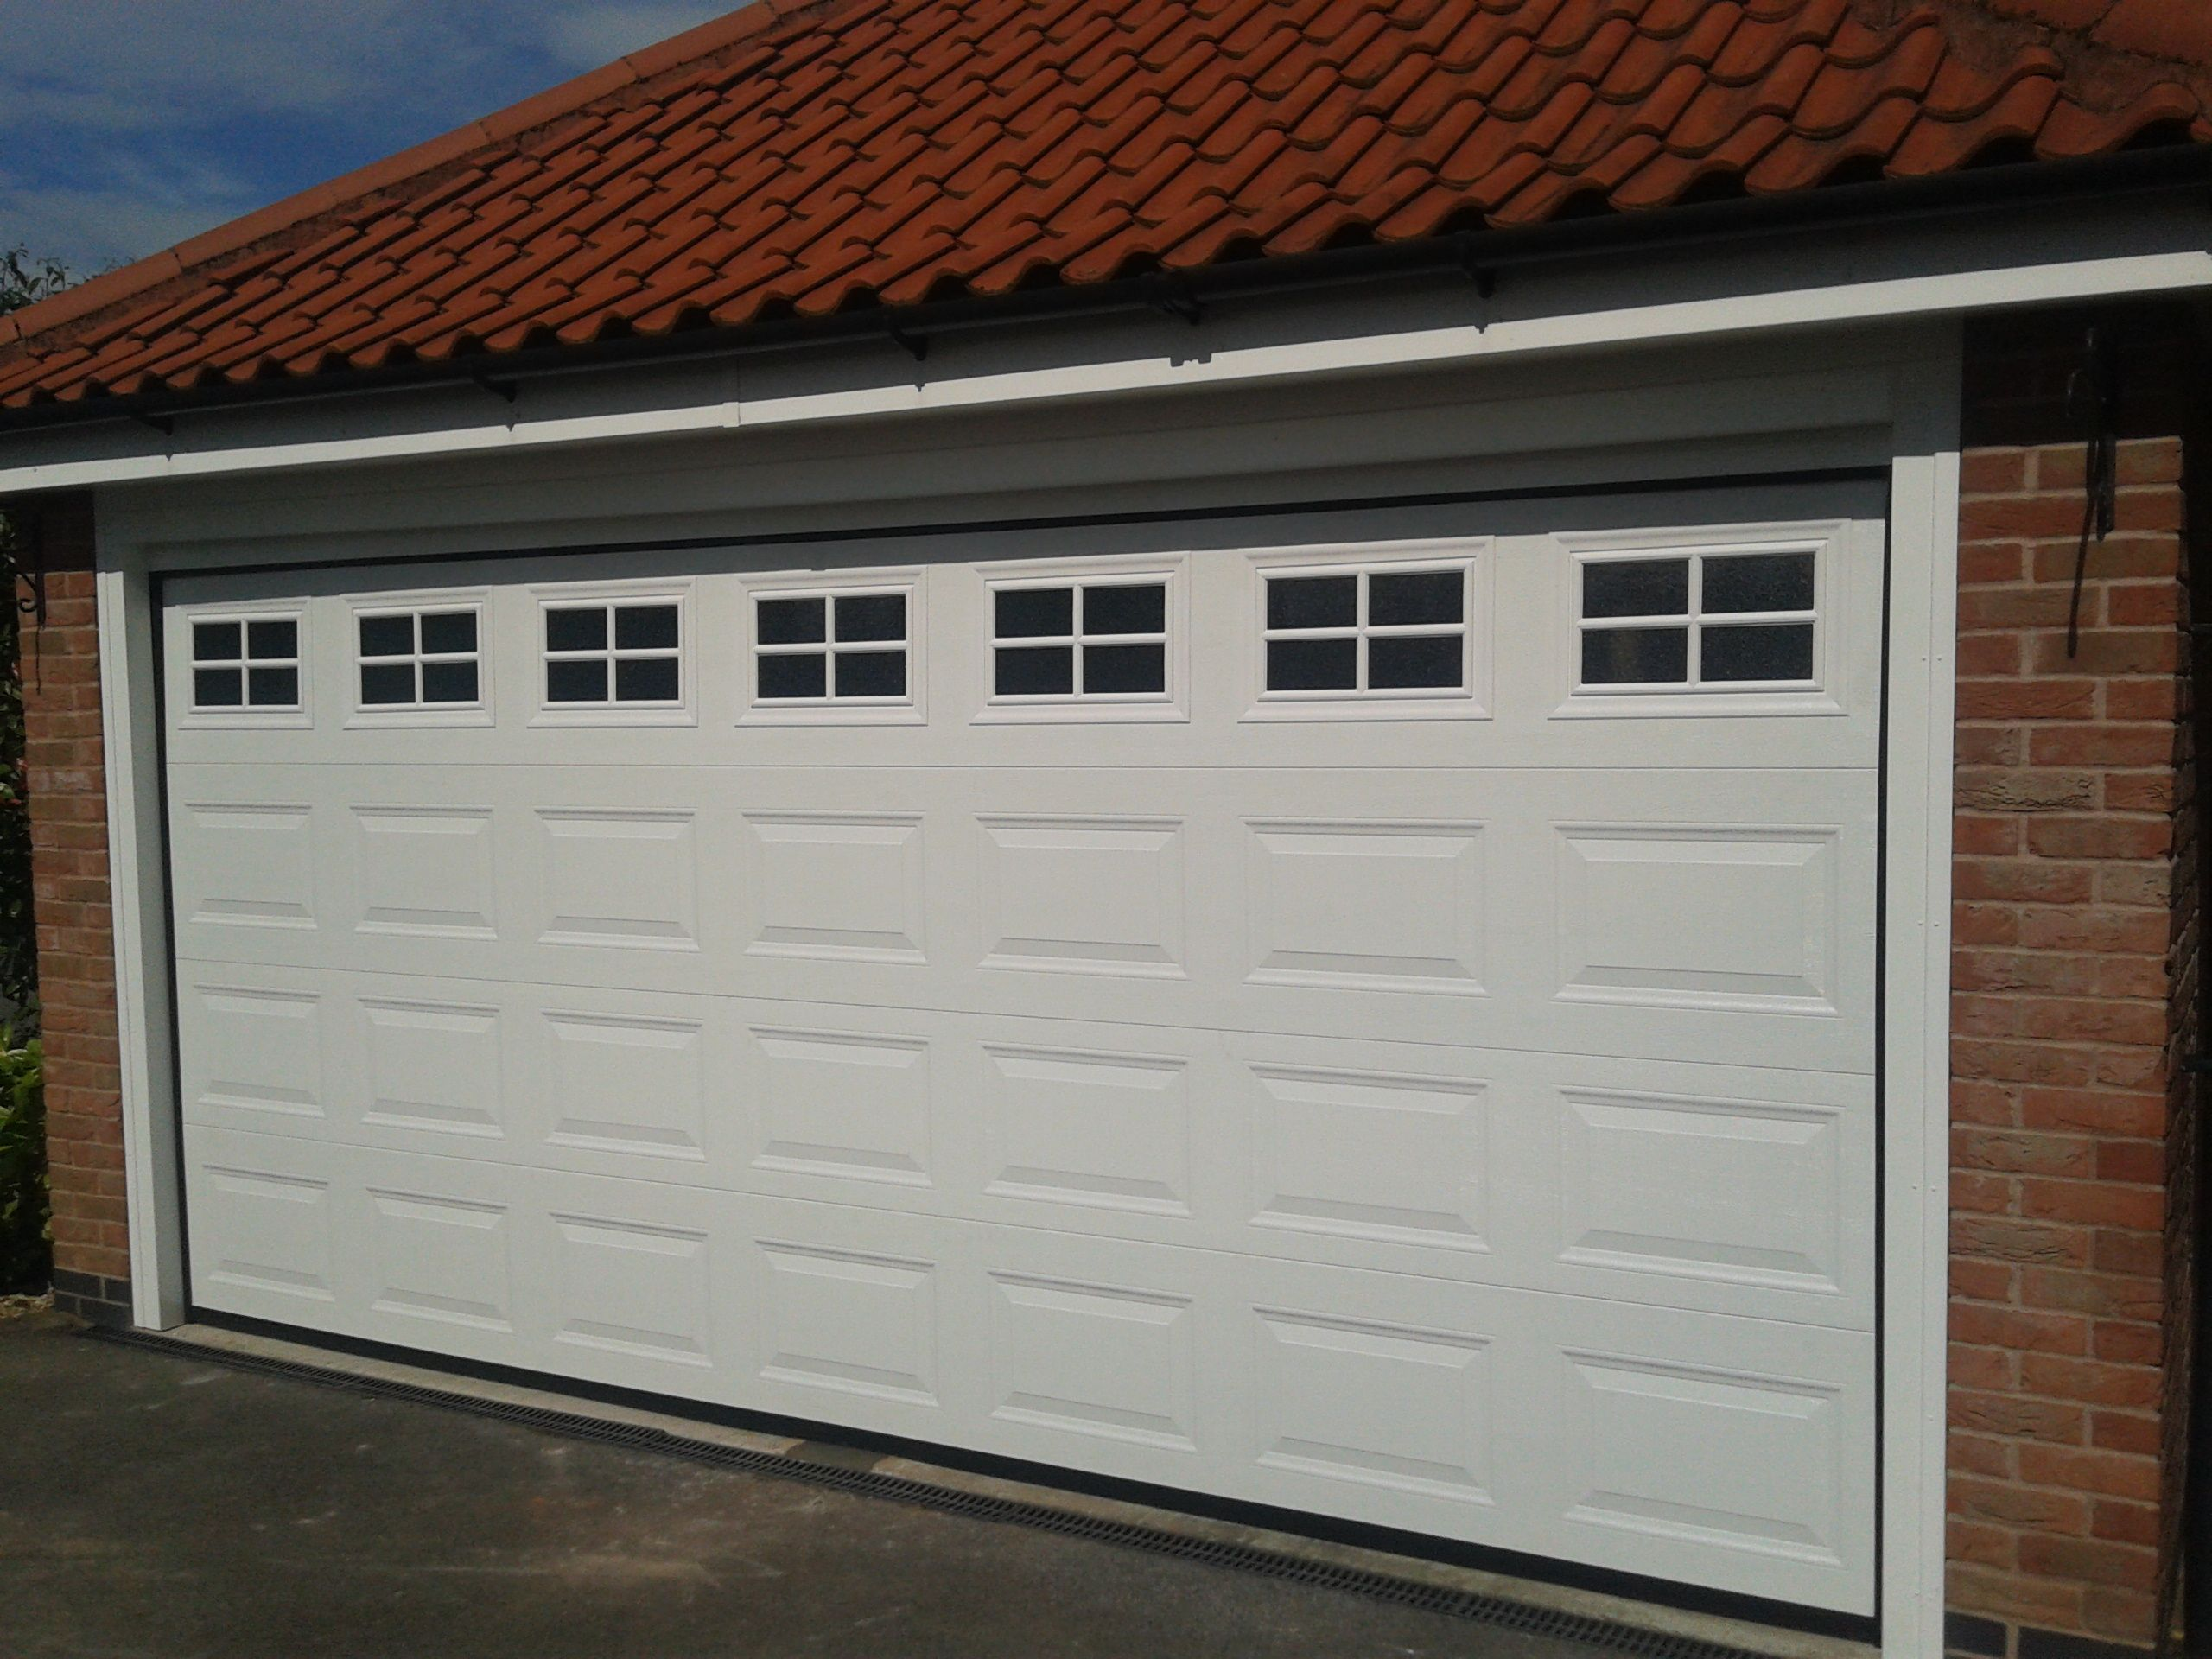 Depiction Of Awesome Two Car Garage Doors That Will Inspire You Garage Doors Automatic Garage Door Garage Door Windows